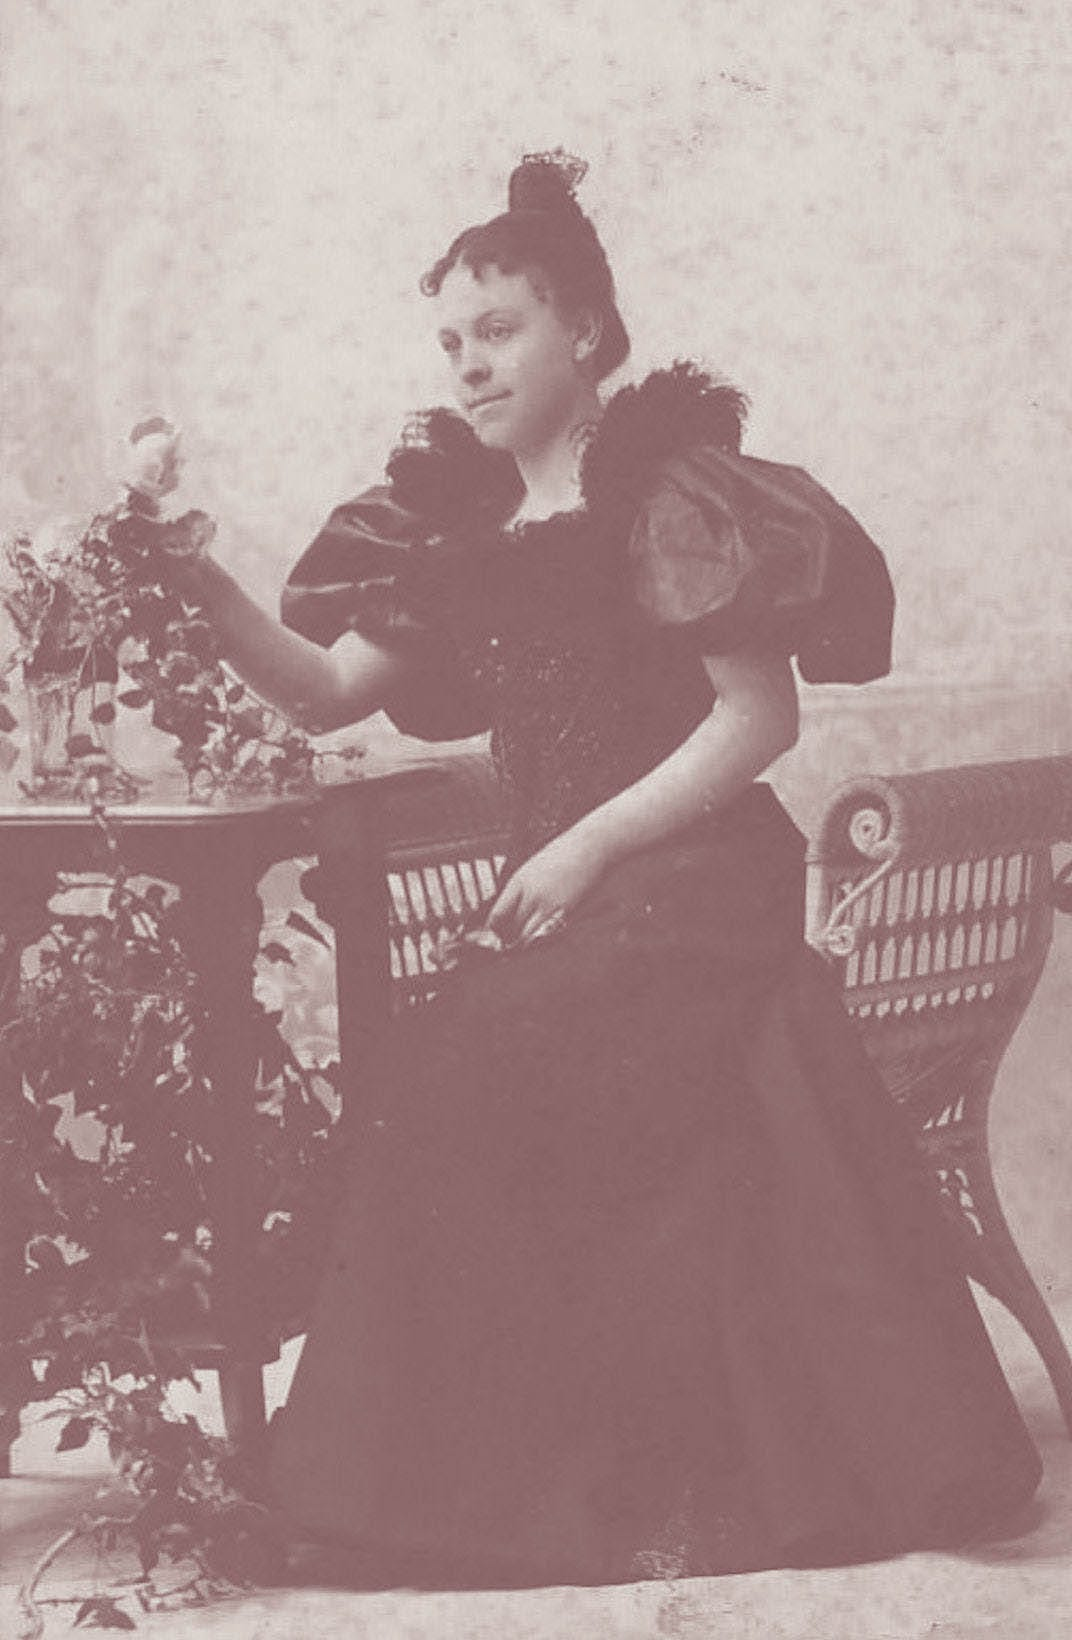 Josephine Pearson was the leader of the anti-suffrage movement in Tennessee.